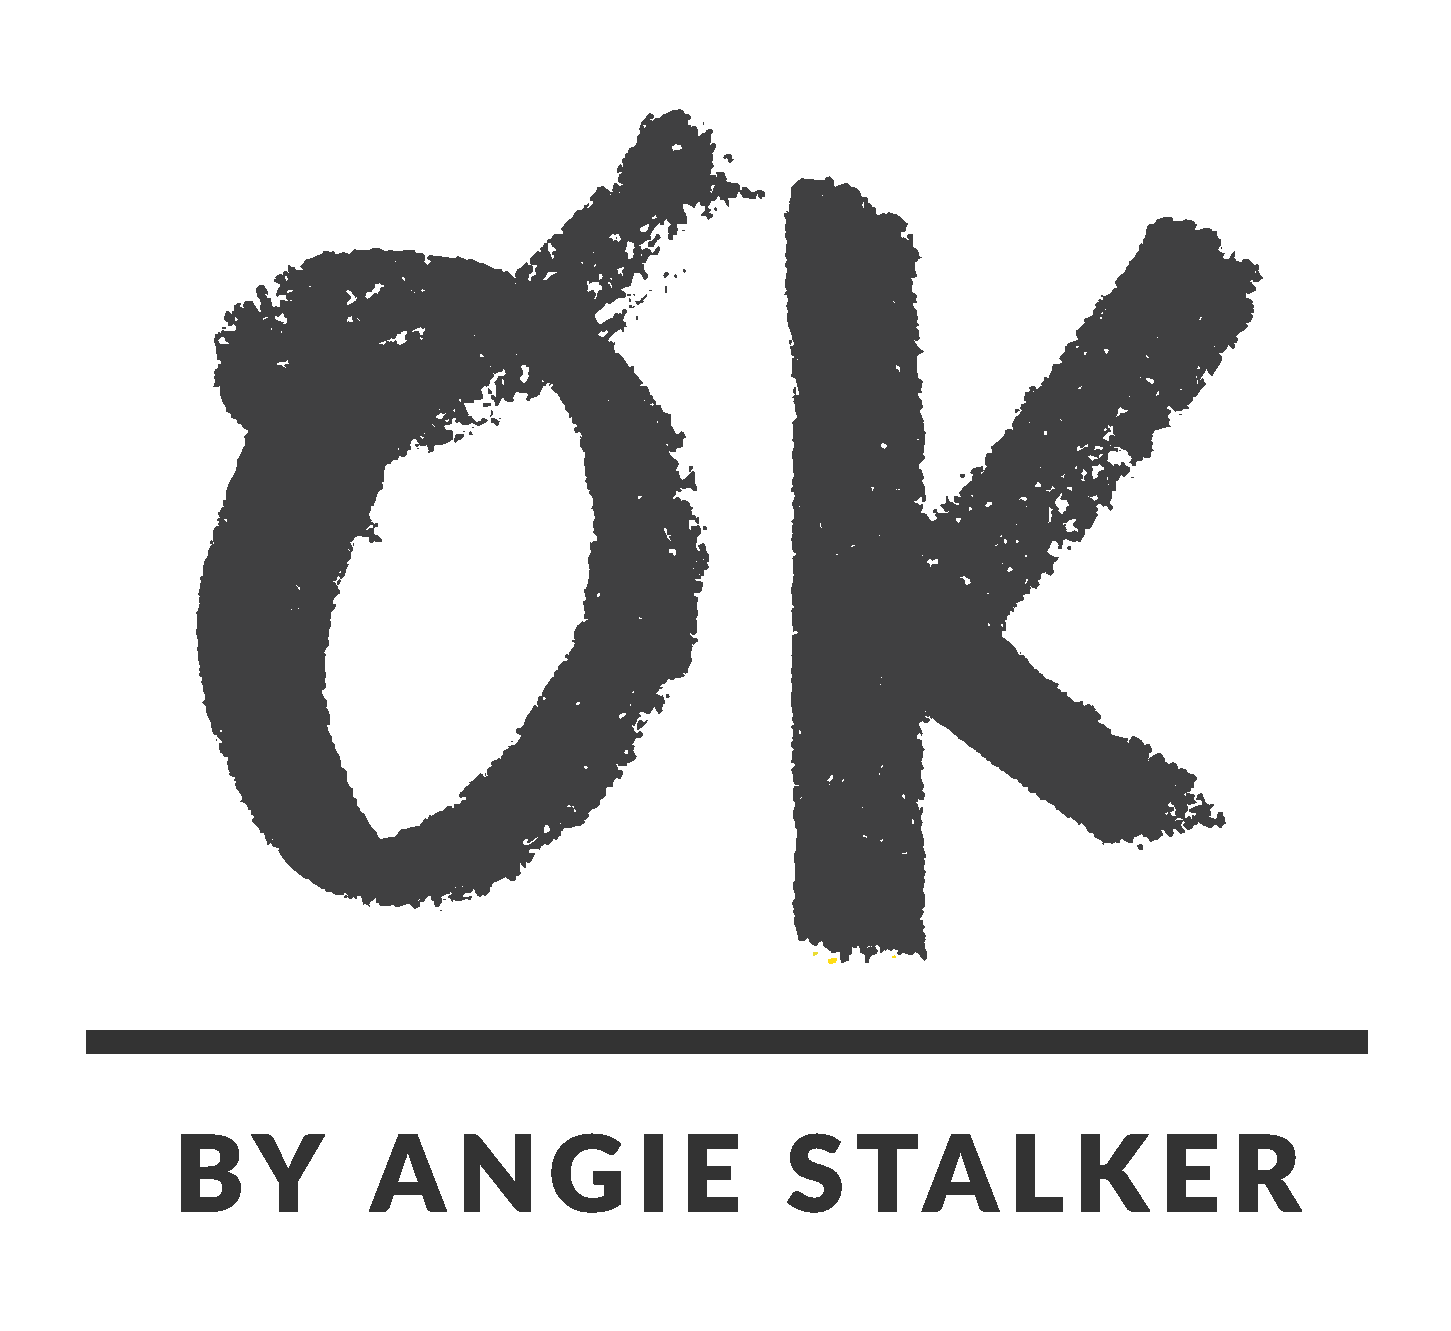 OK by Angie Stalker